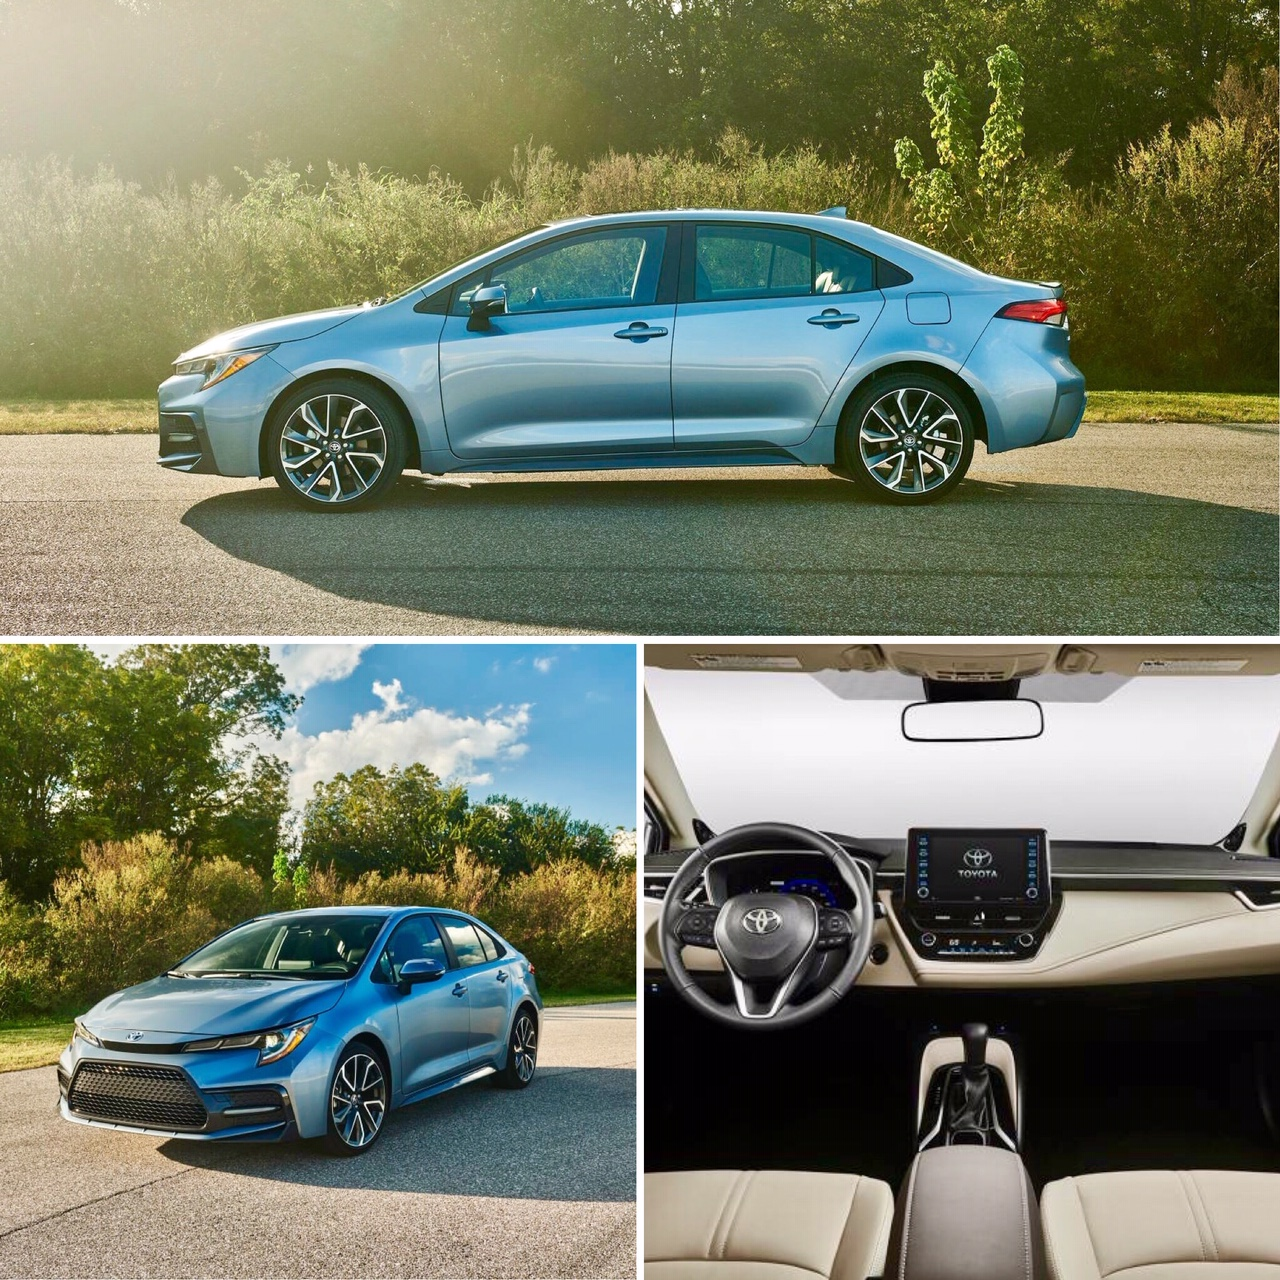 New 2020 Toyota Corolla Hybrid For Sale: Adam's Autos: New Cars Incoming: 2020 Corolla & 2018 L.A